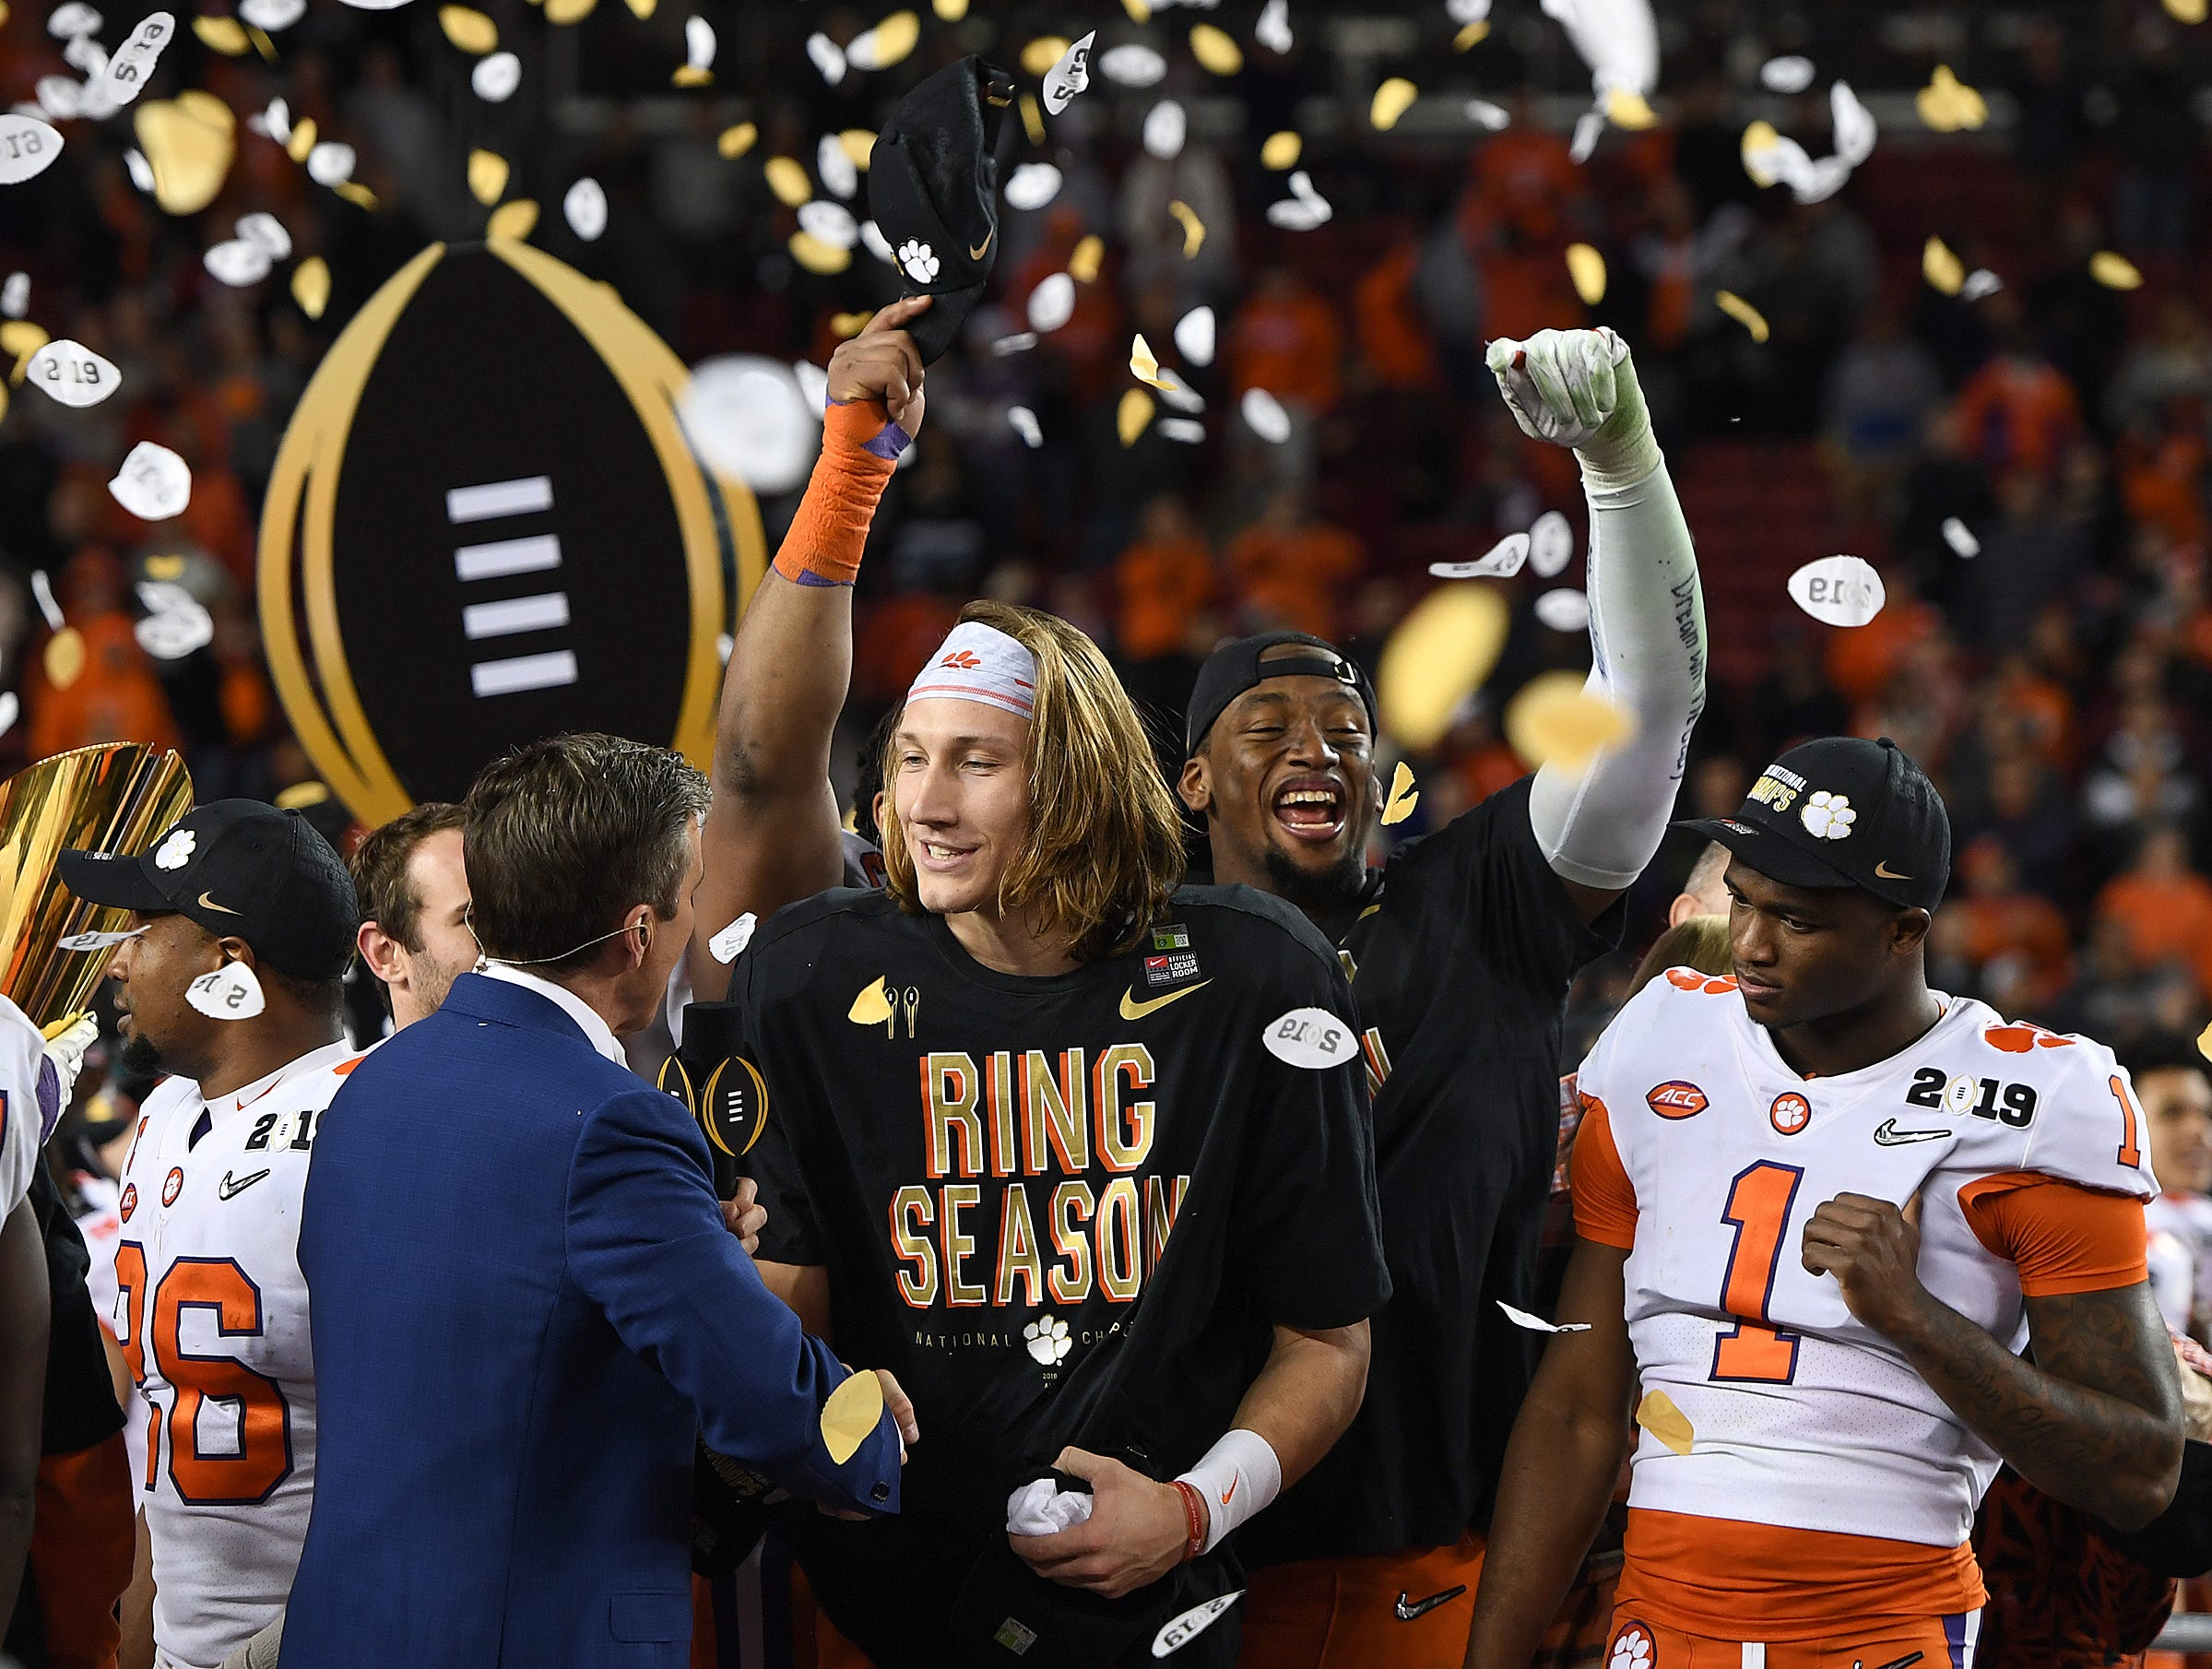 Clemson quarterback Trevor Lawrence is named offensive MVP by nterviewed by ESPN's Race Davis after the Tigers defeated Alabama 44-16 in College Football National Championship game at Levi's Stadium in Santa Clara, CA Monday, January 7, 2019.